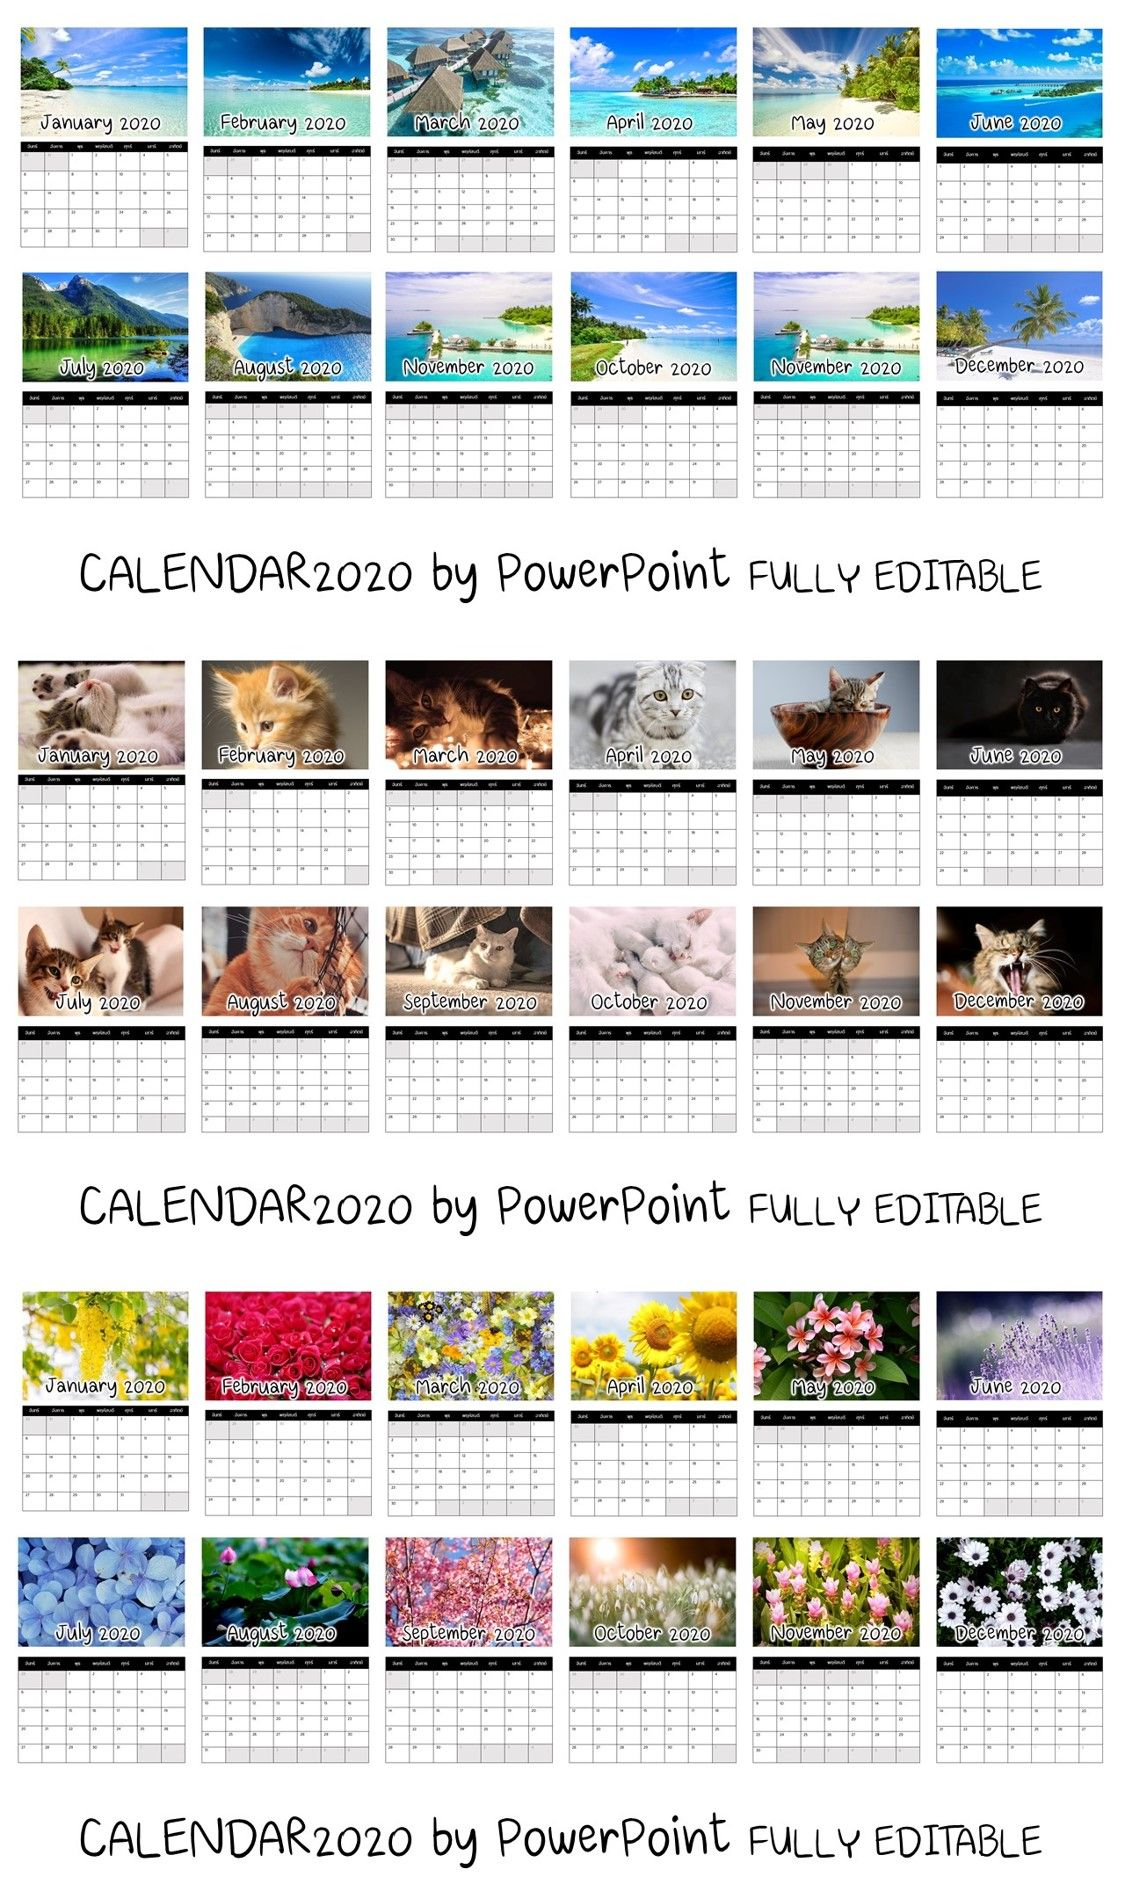 Calendar 2020 By Powerpoint Free Download Powerpoint Free Calendar Template Calendar 2020